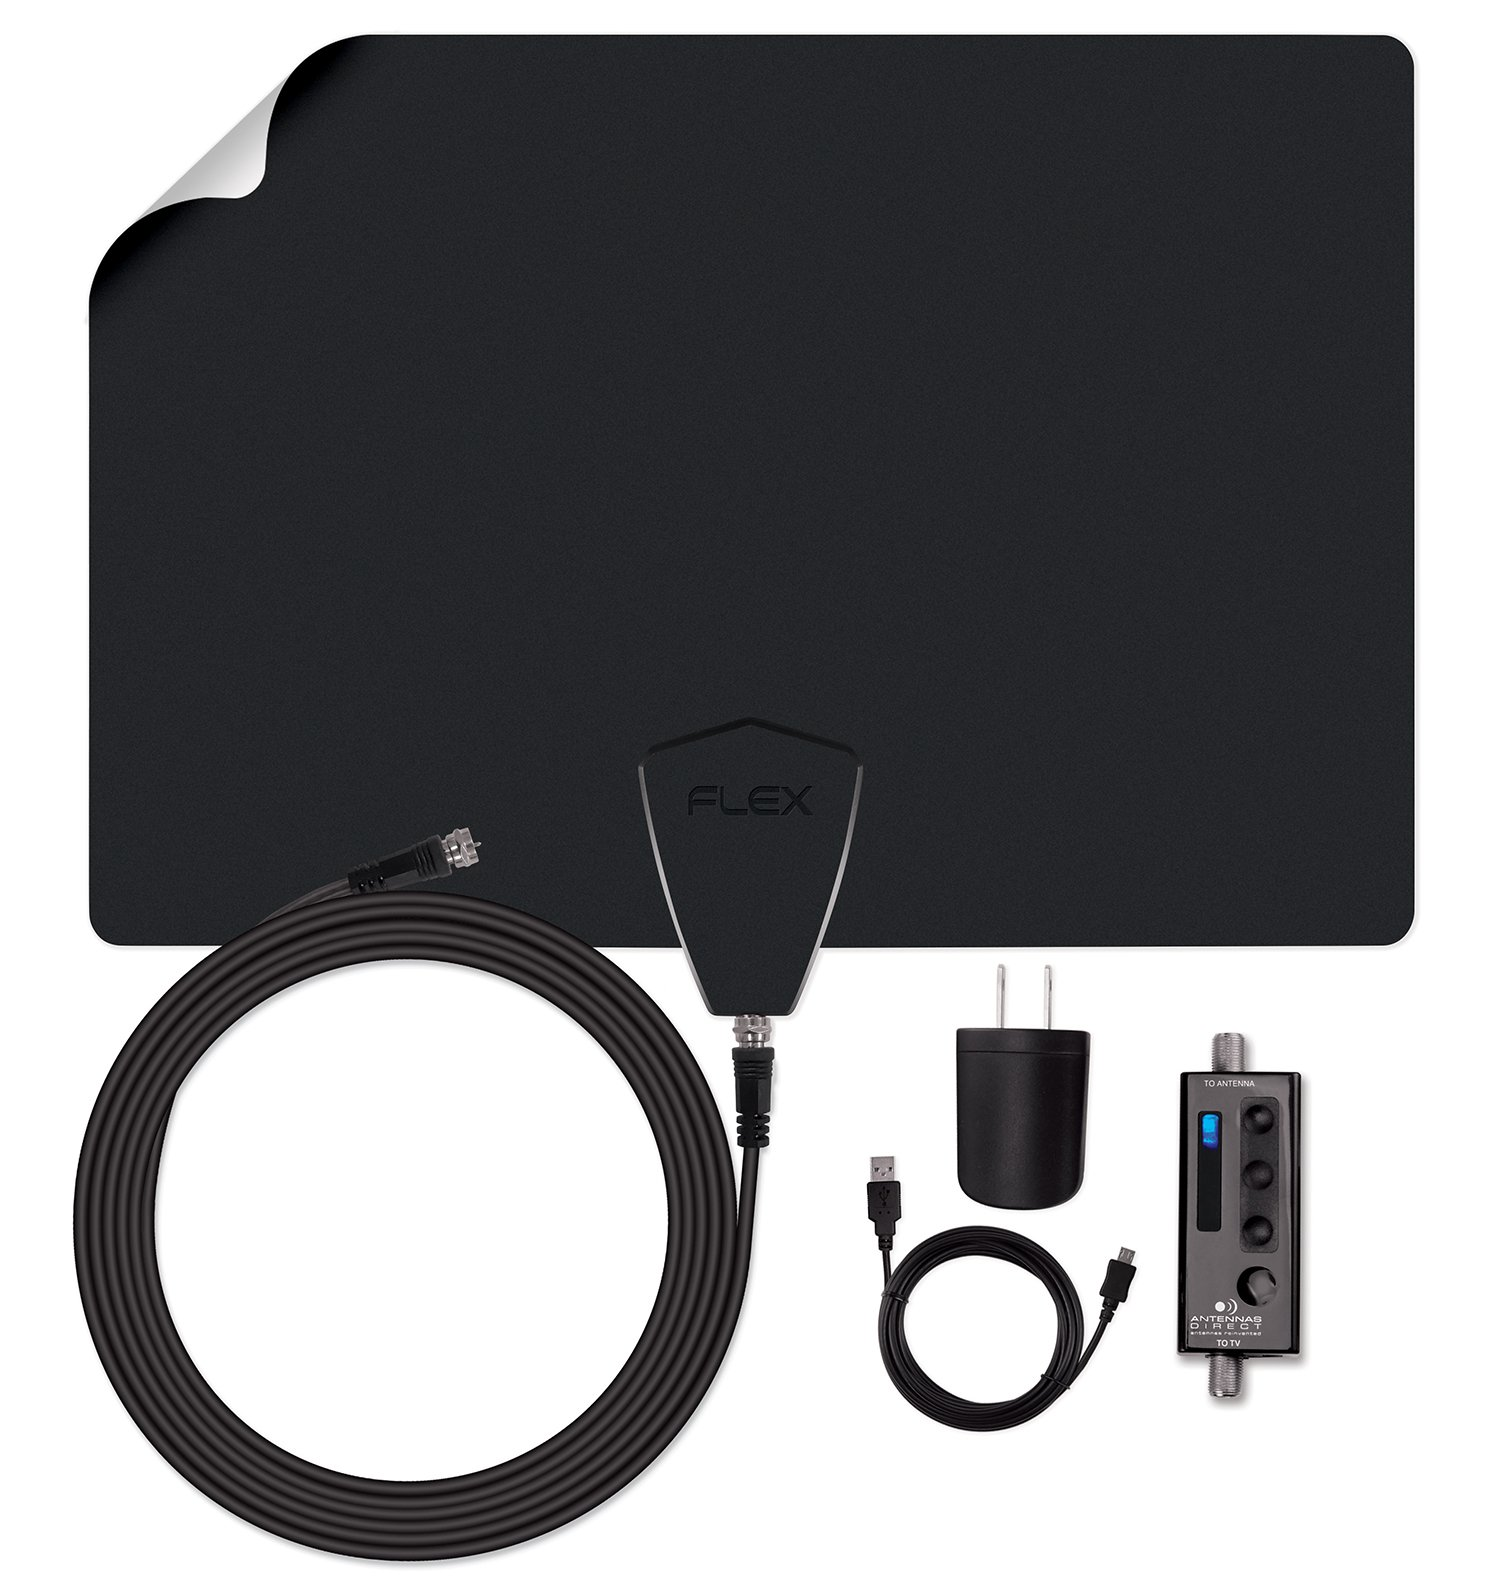 Antennas Direct ClearStream FLEX Amplified TV Antenna, 50+ Mile Range, UHF/VHF, Multi-directional, Grips to Walls, USB In-Line Amplifier, 15 ft. RG-6 Cable, 4K Ready, Black/White/Paintable - FLEX by Antennas Direct